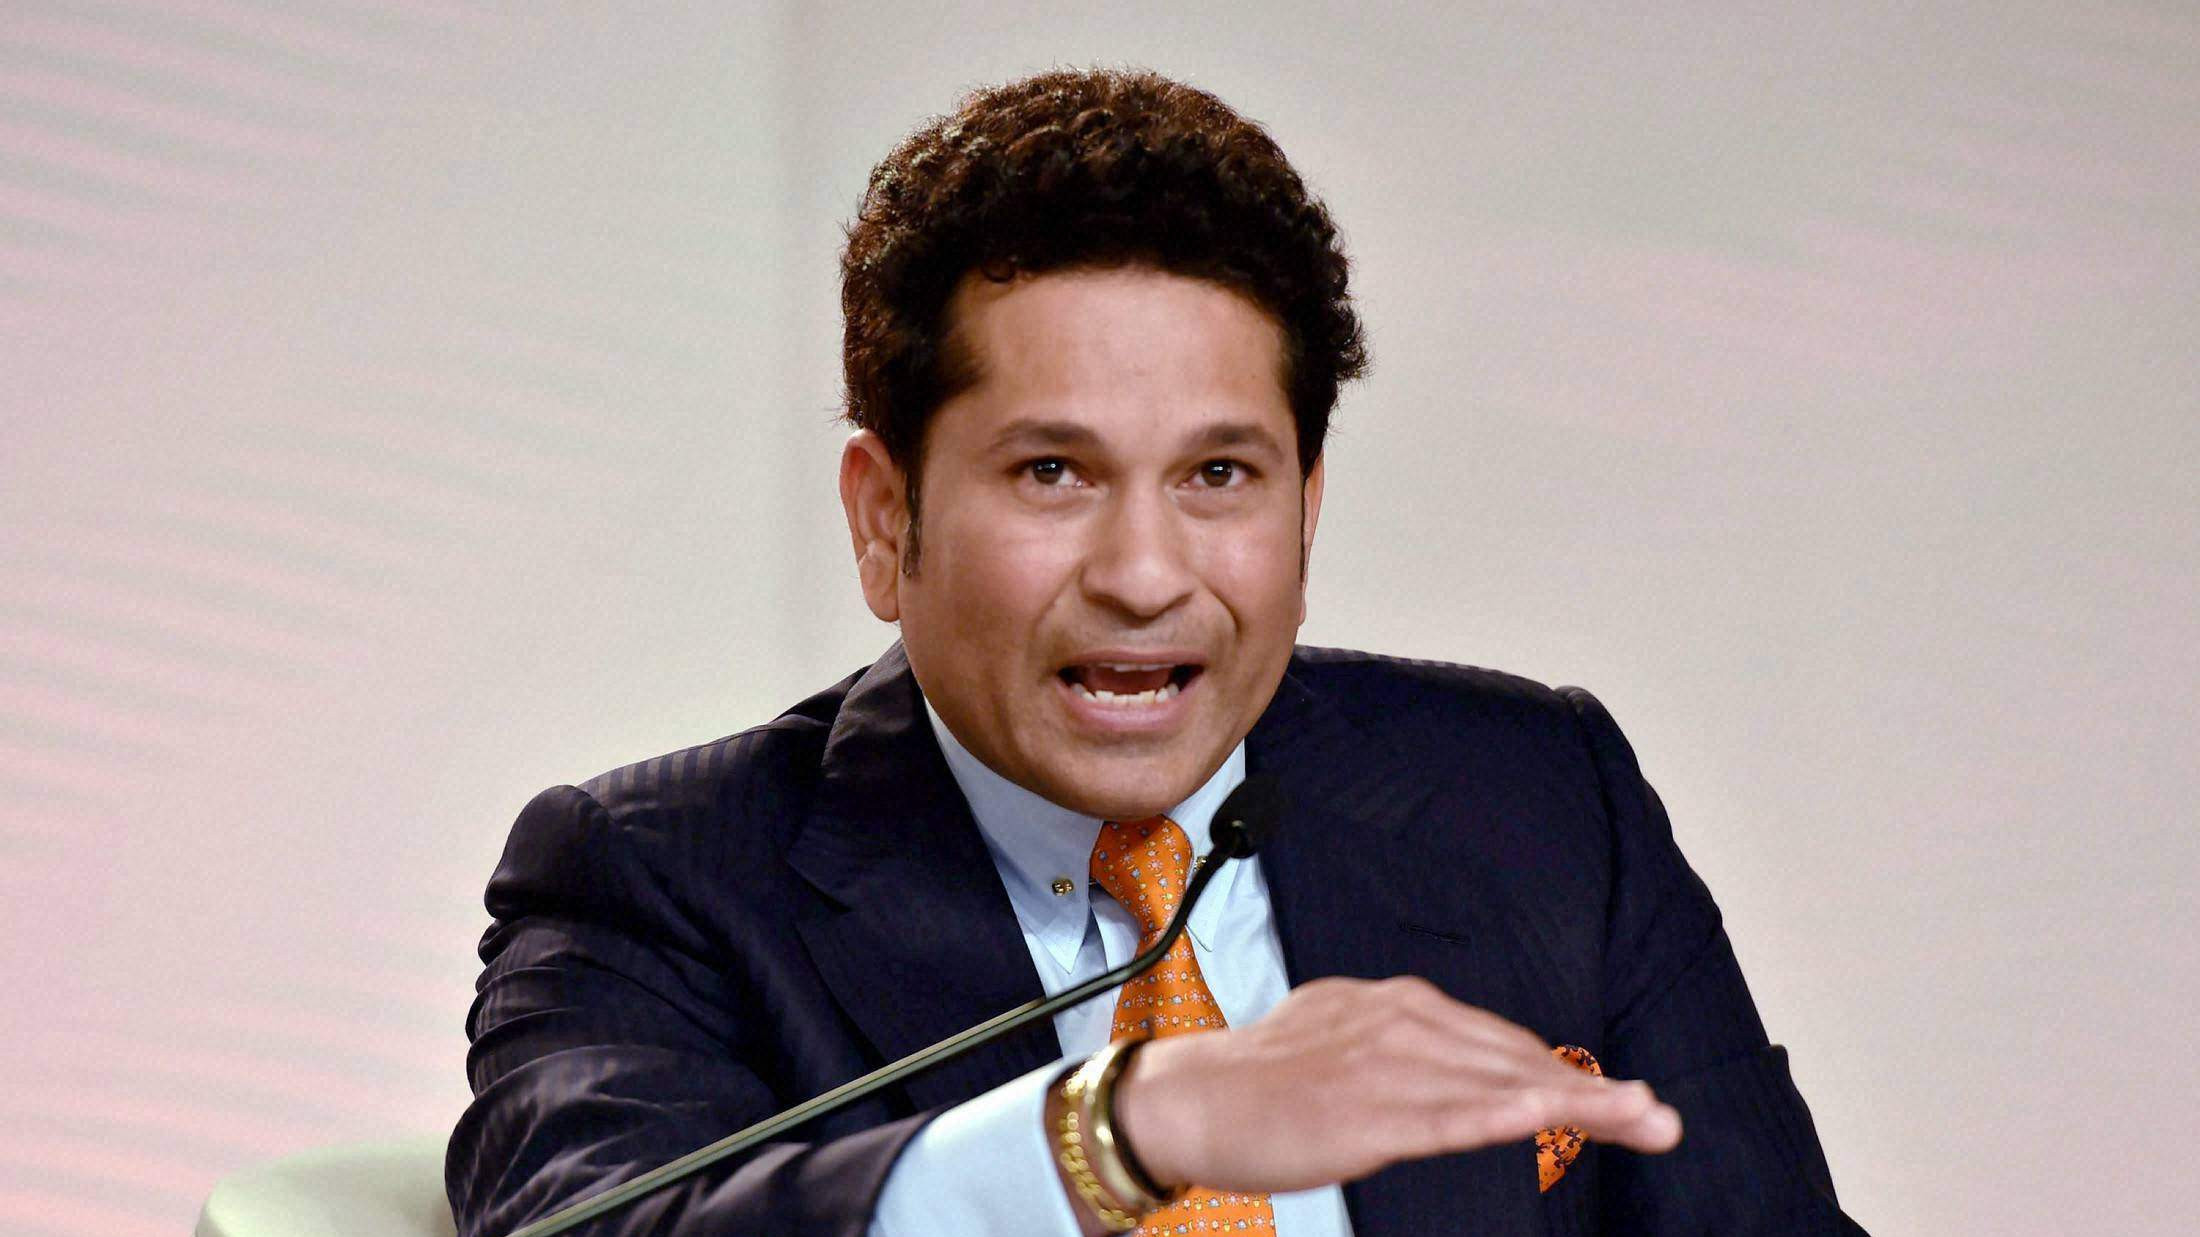 AUS v IND 2018-19: Sachin Tendulkar baffled with Australia's